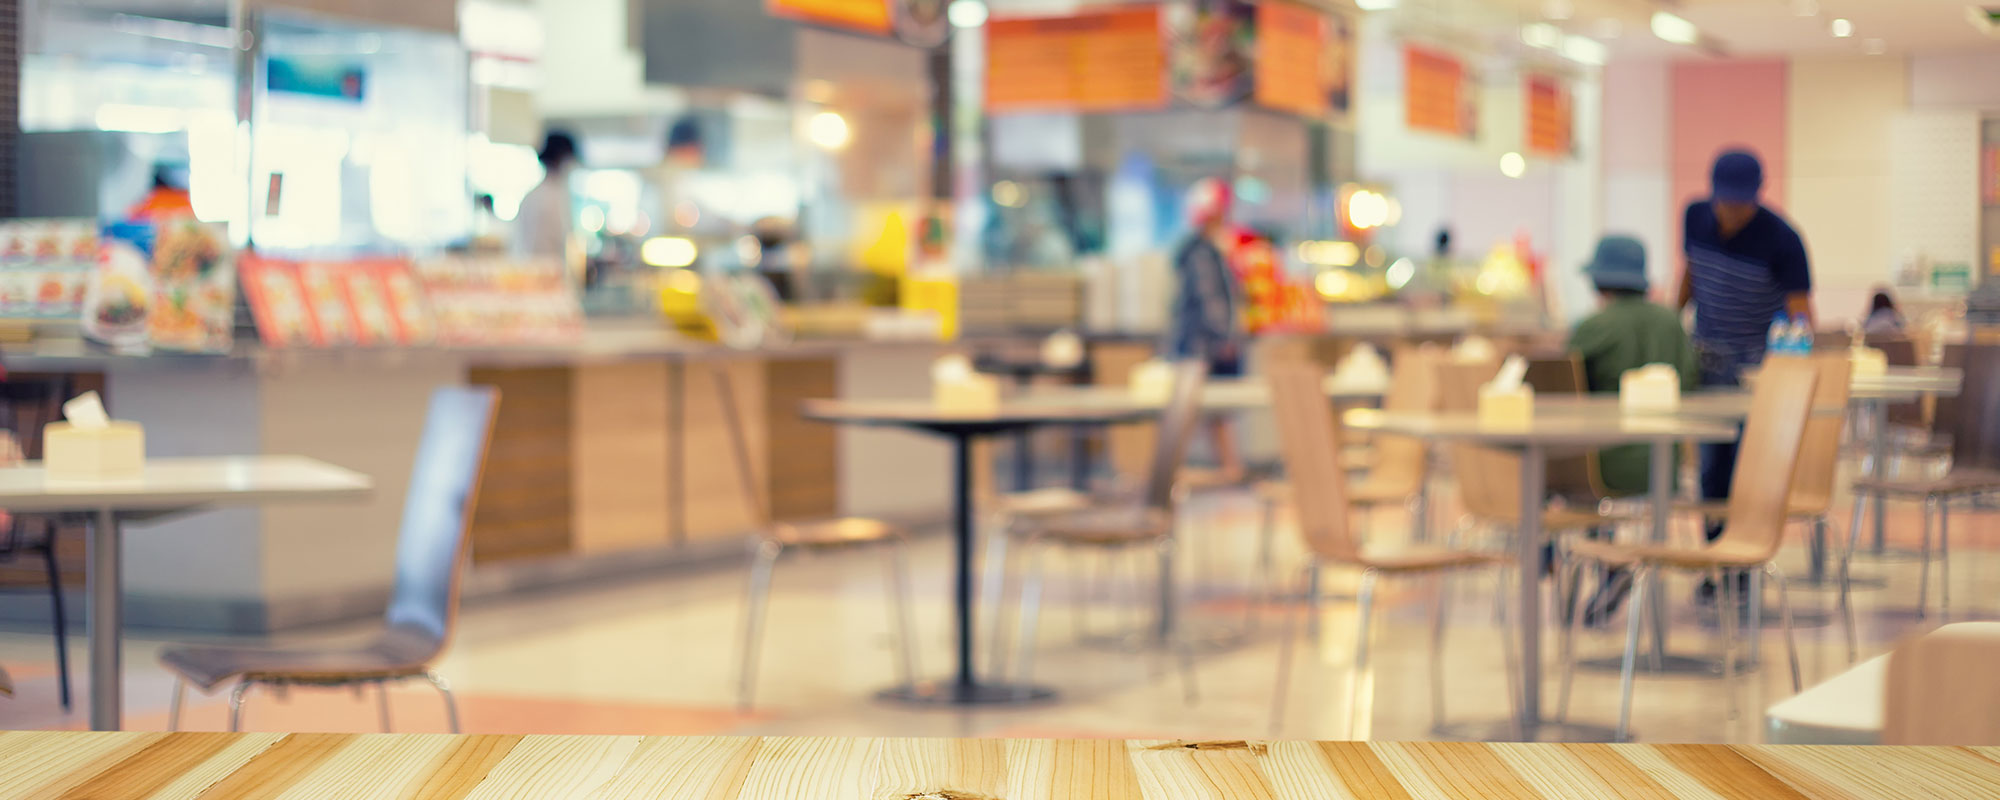 blurred image of check-outs at a grocery store